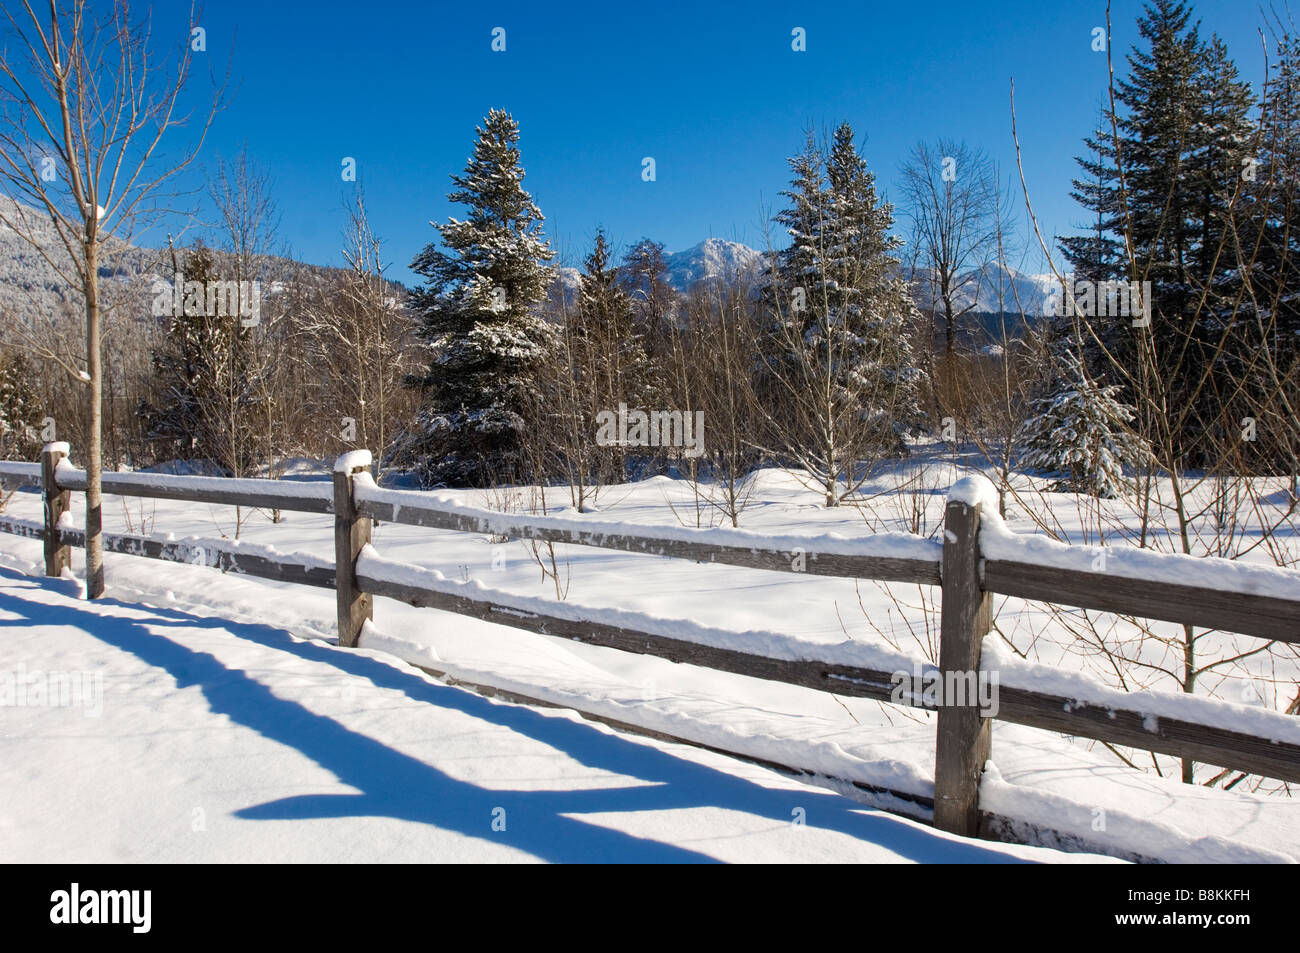 Old farm fence in a snowy field Pemberton and Whistler BC, Canada - Stock Image